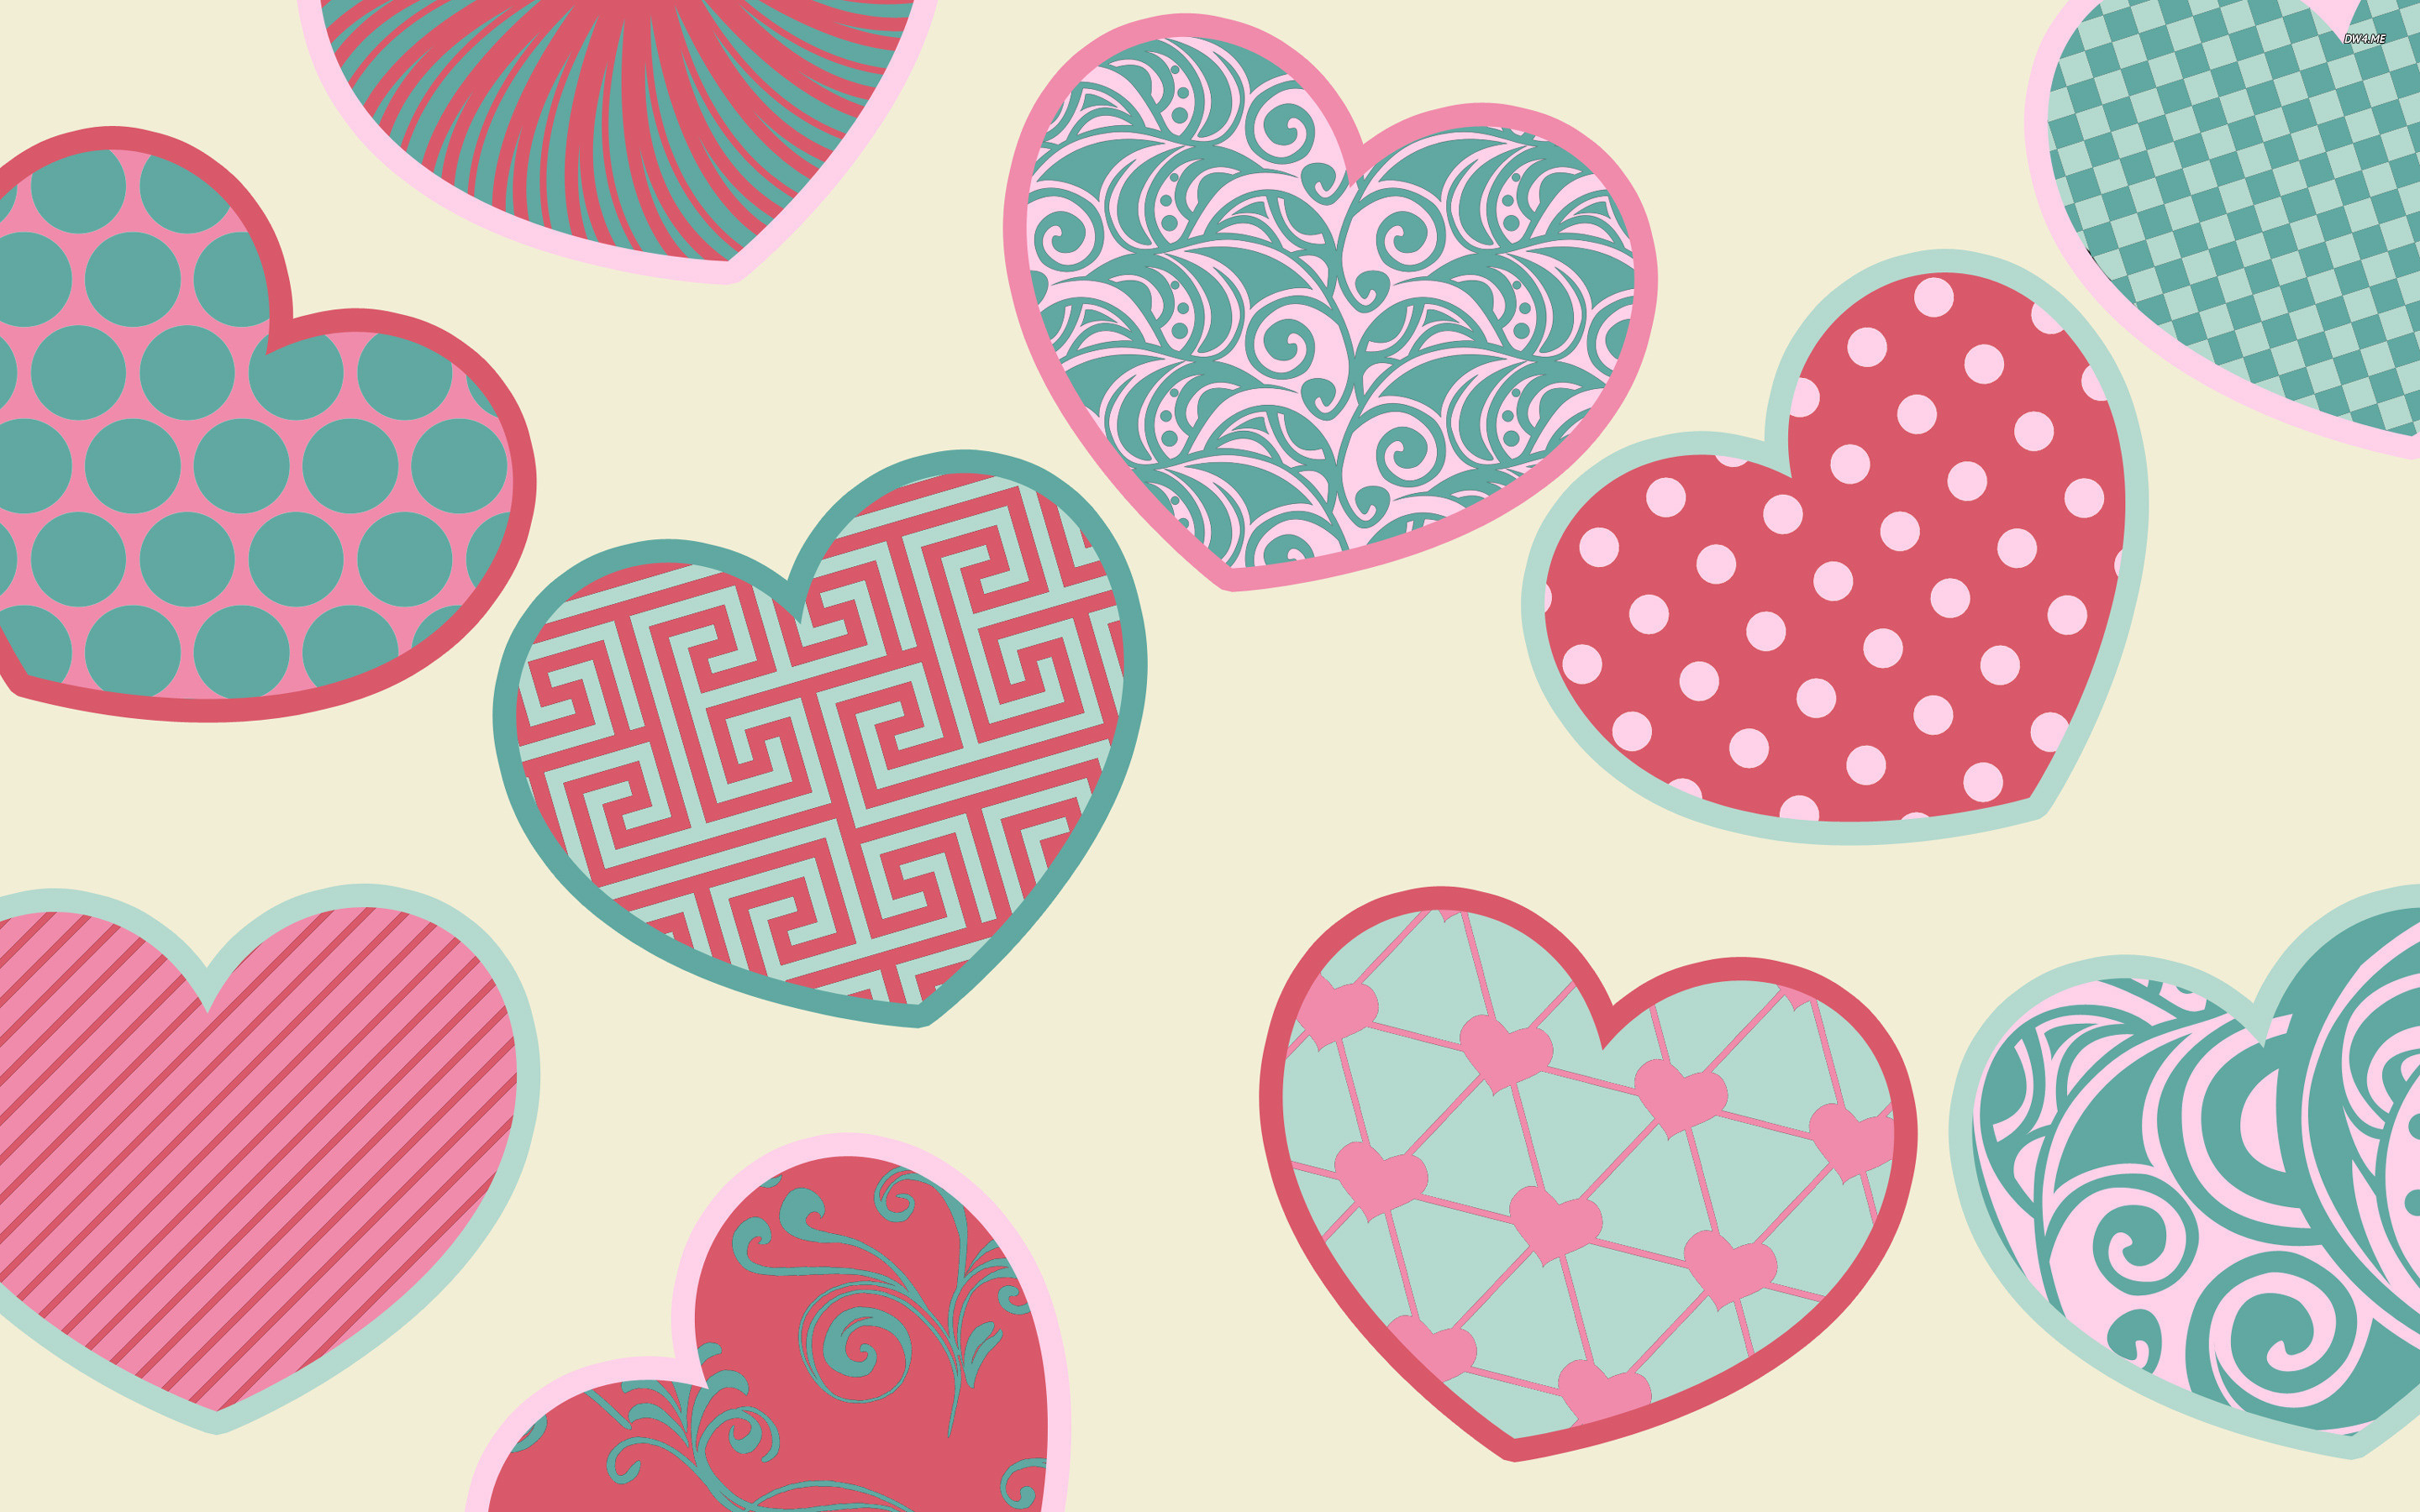 Cute Heart Wallpaper 59 Images